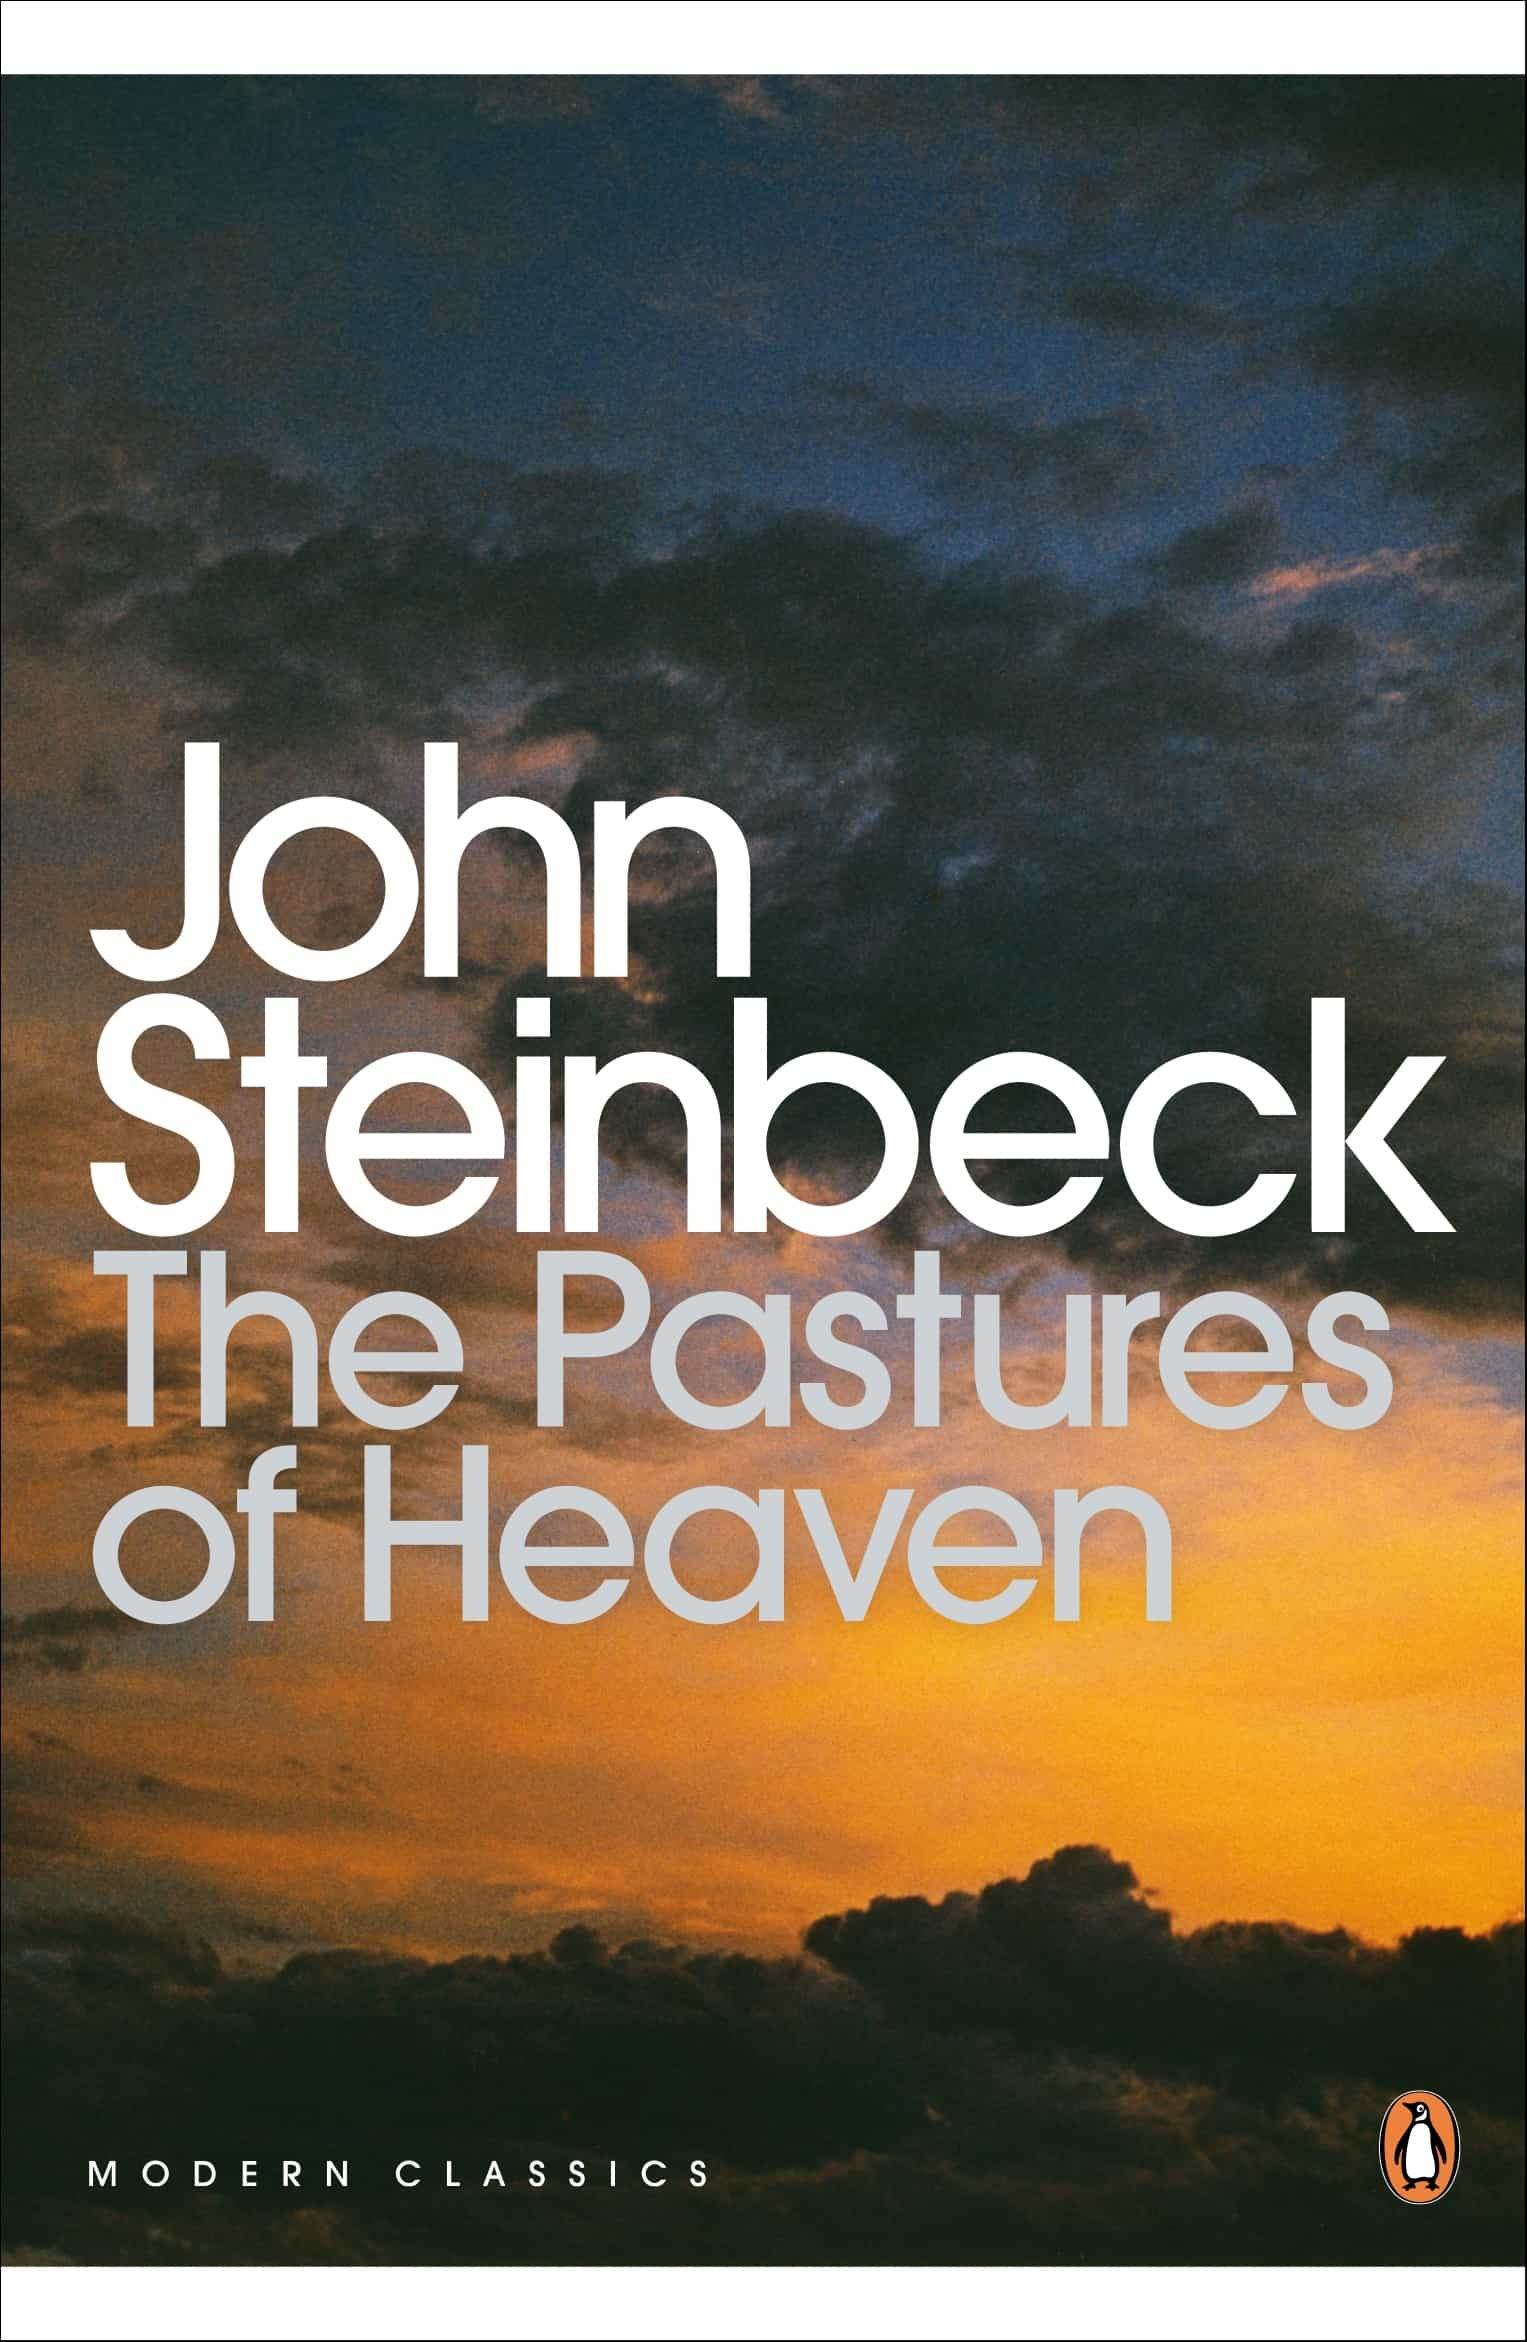 With download ebook steinbeck travels charley